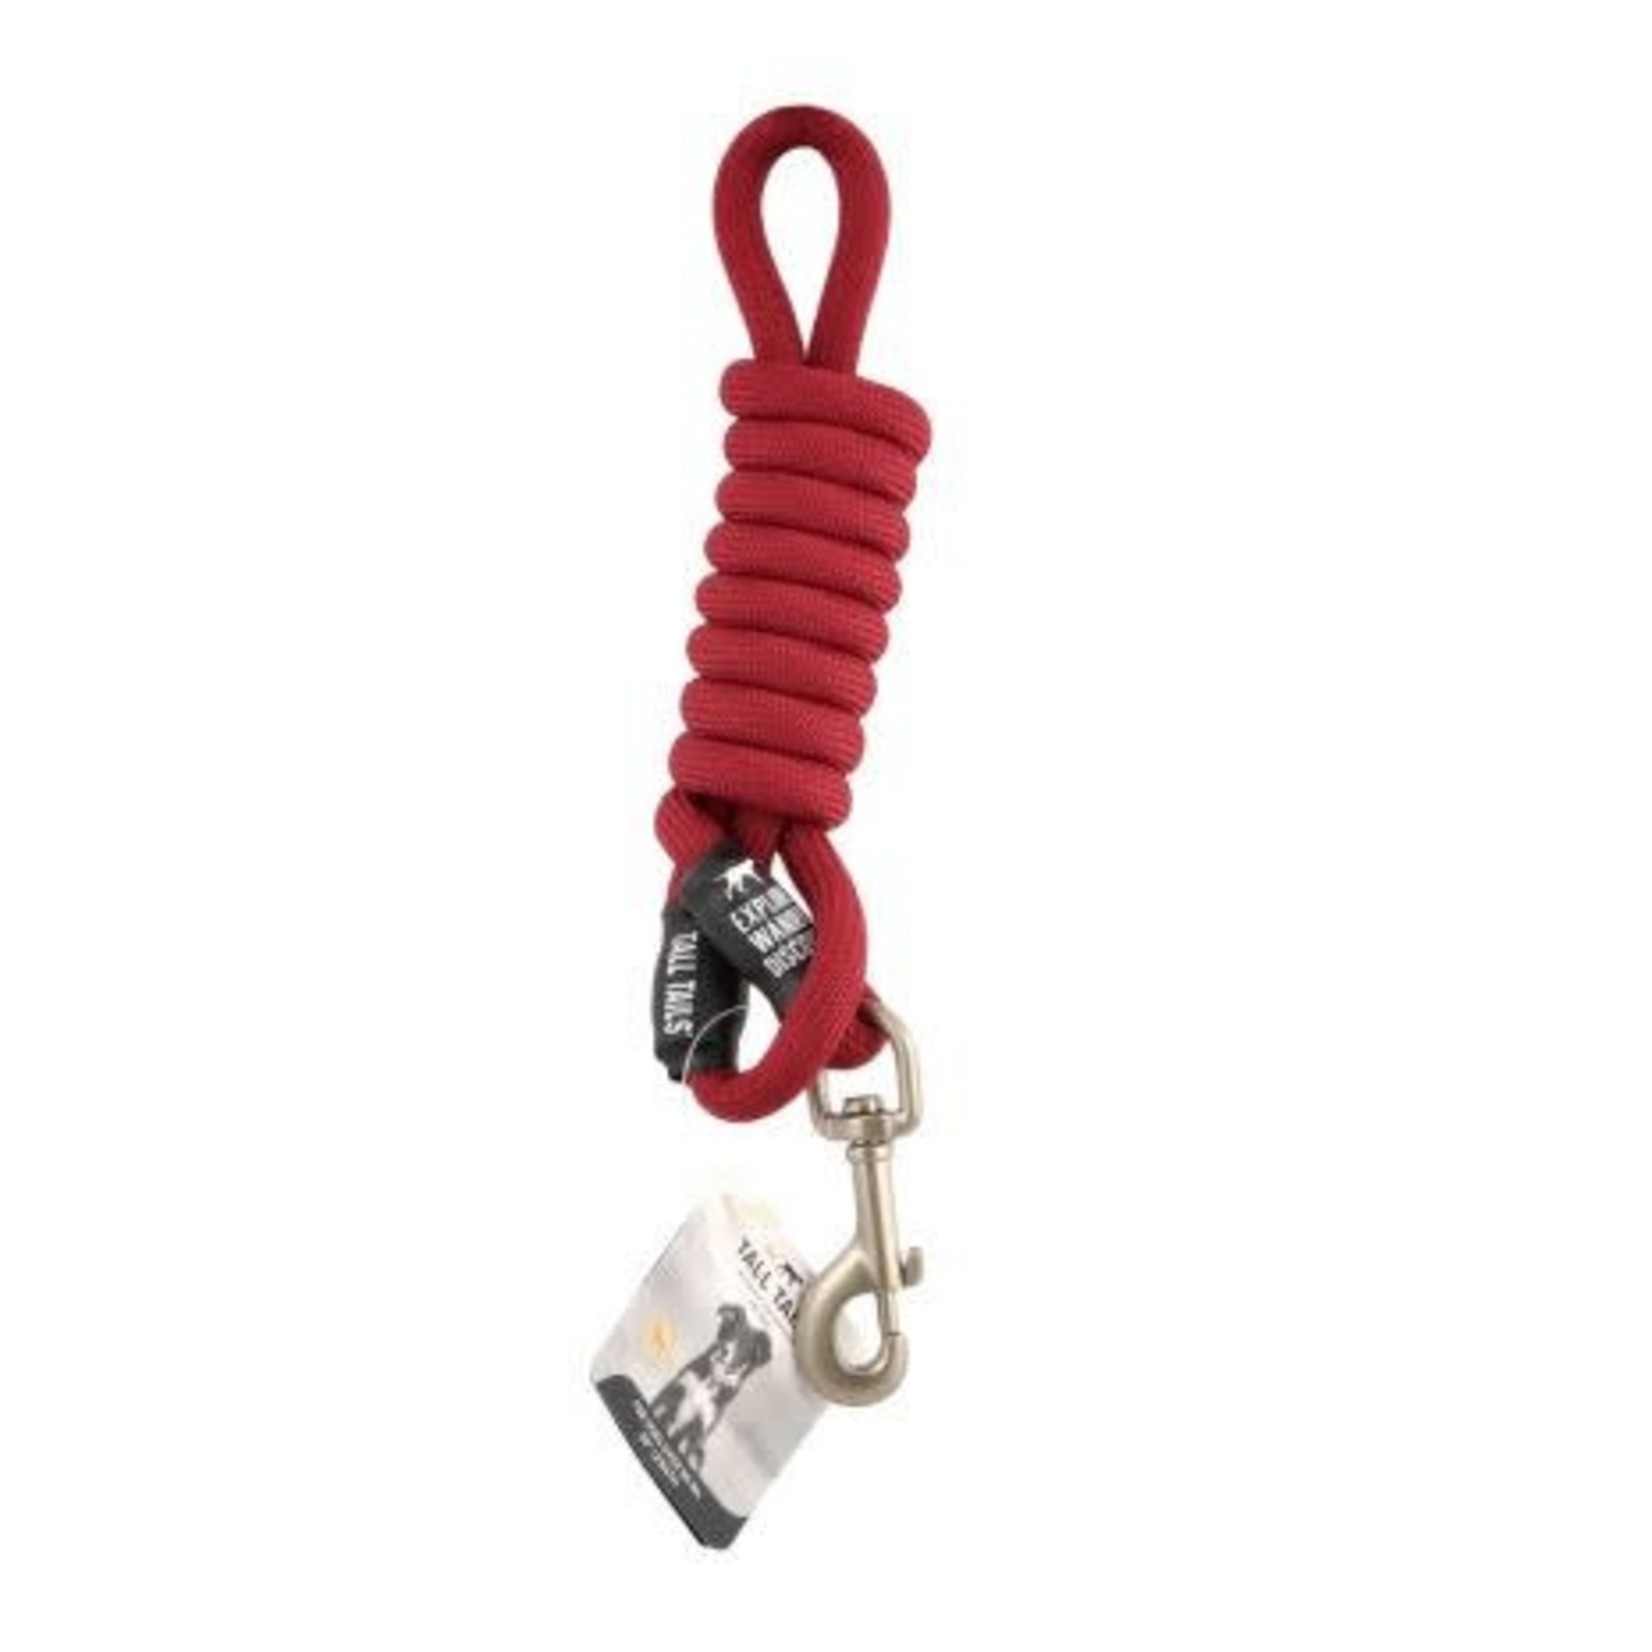 Tall Tails Tall Tails Rope Leash Red Small